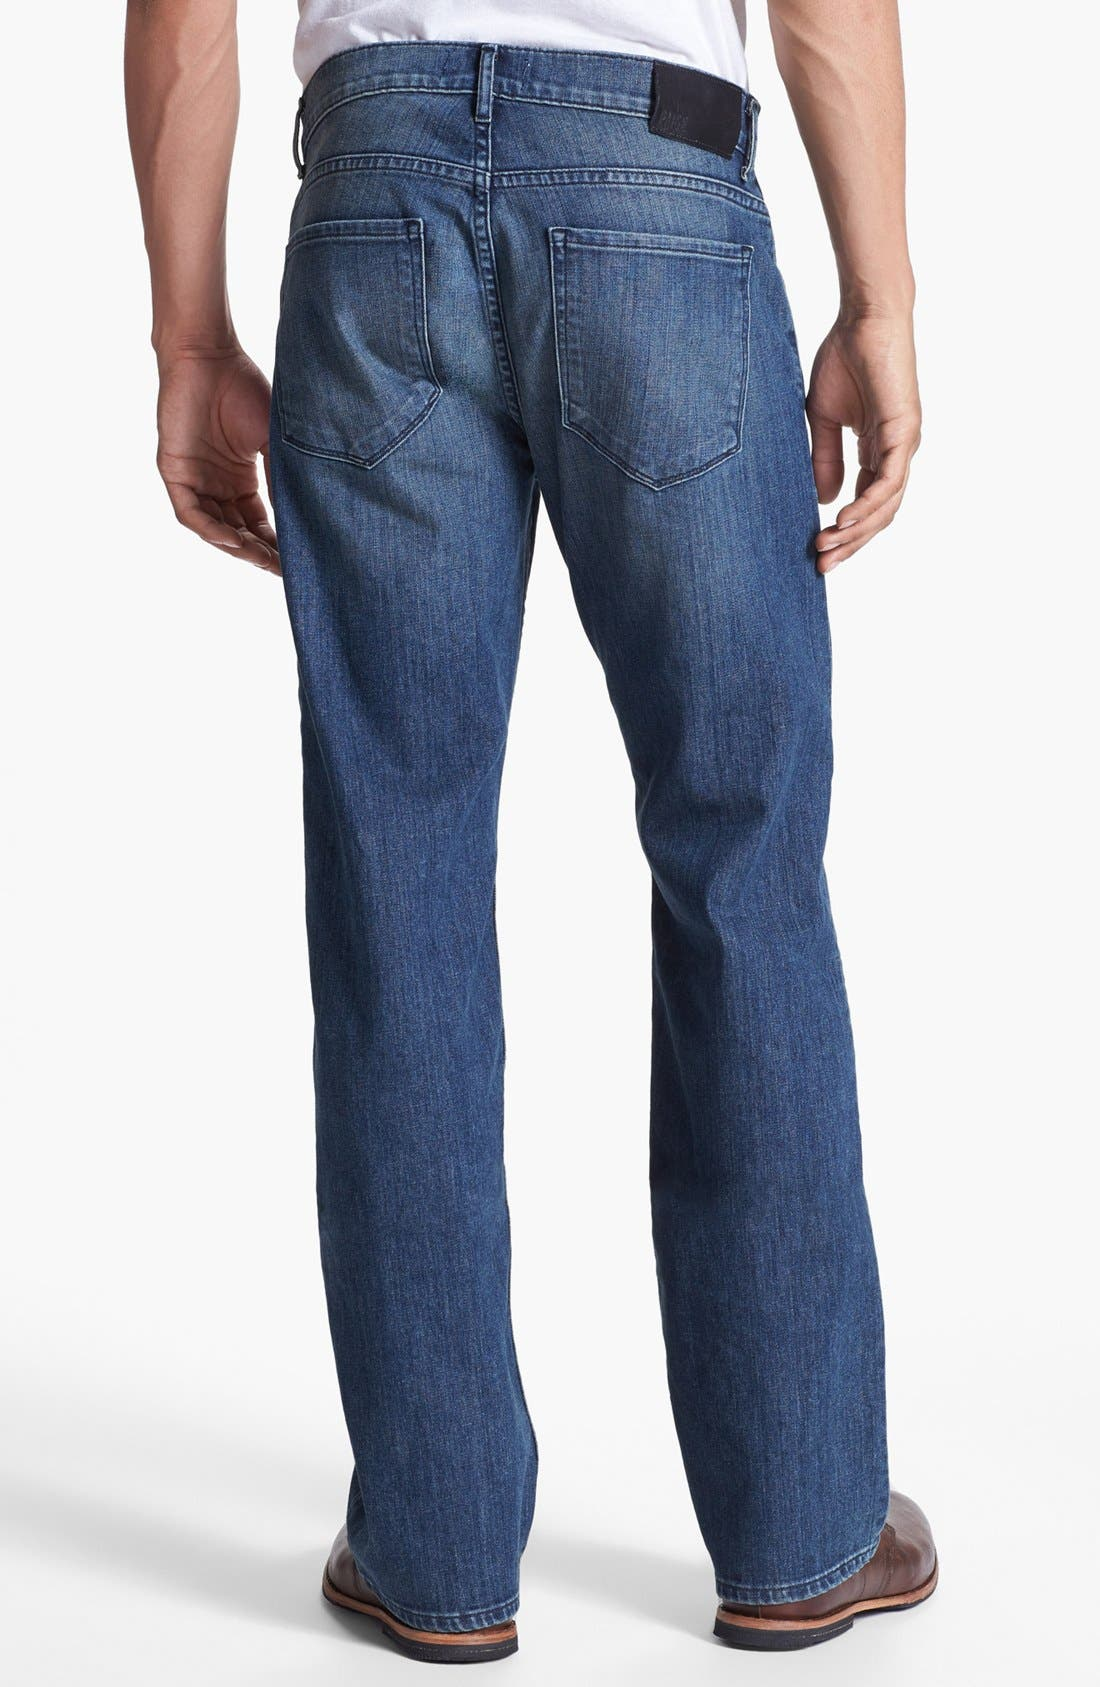 Alternate Image 1 Selected - Paige 'Doheny' Straight Leg Jeans (Winston)